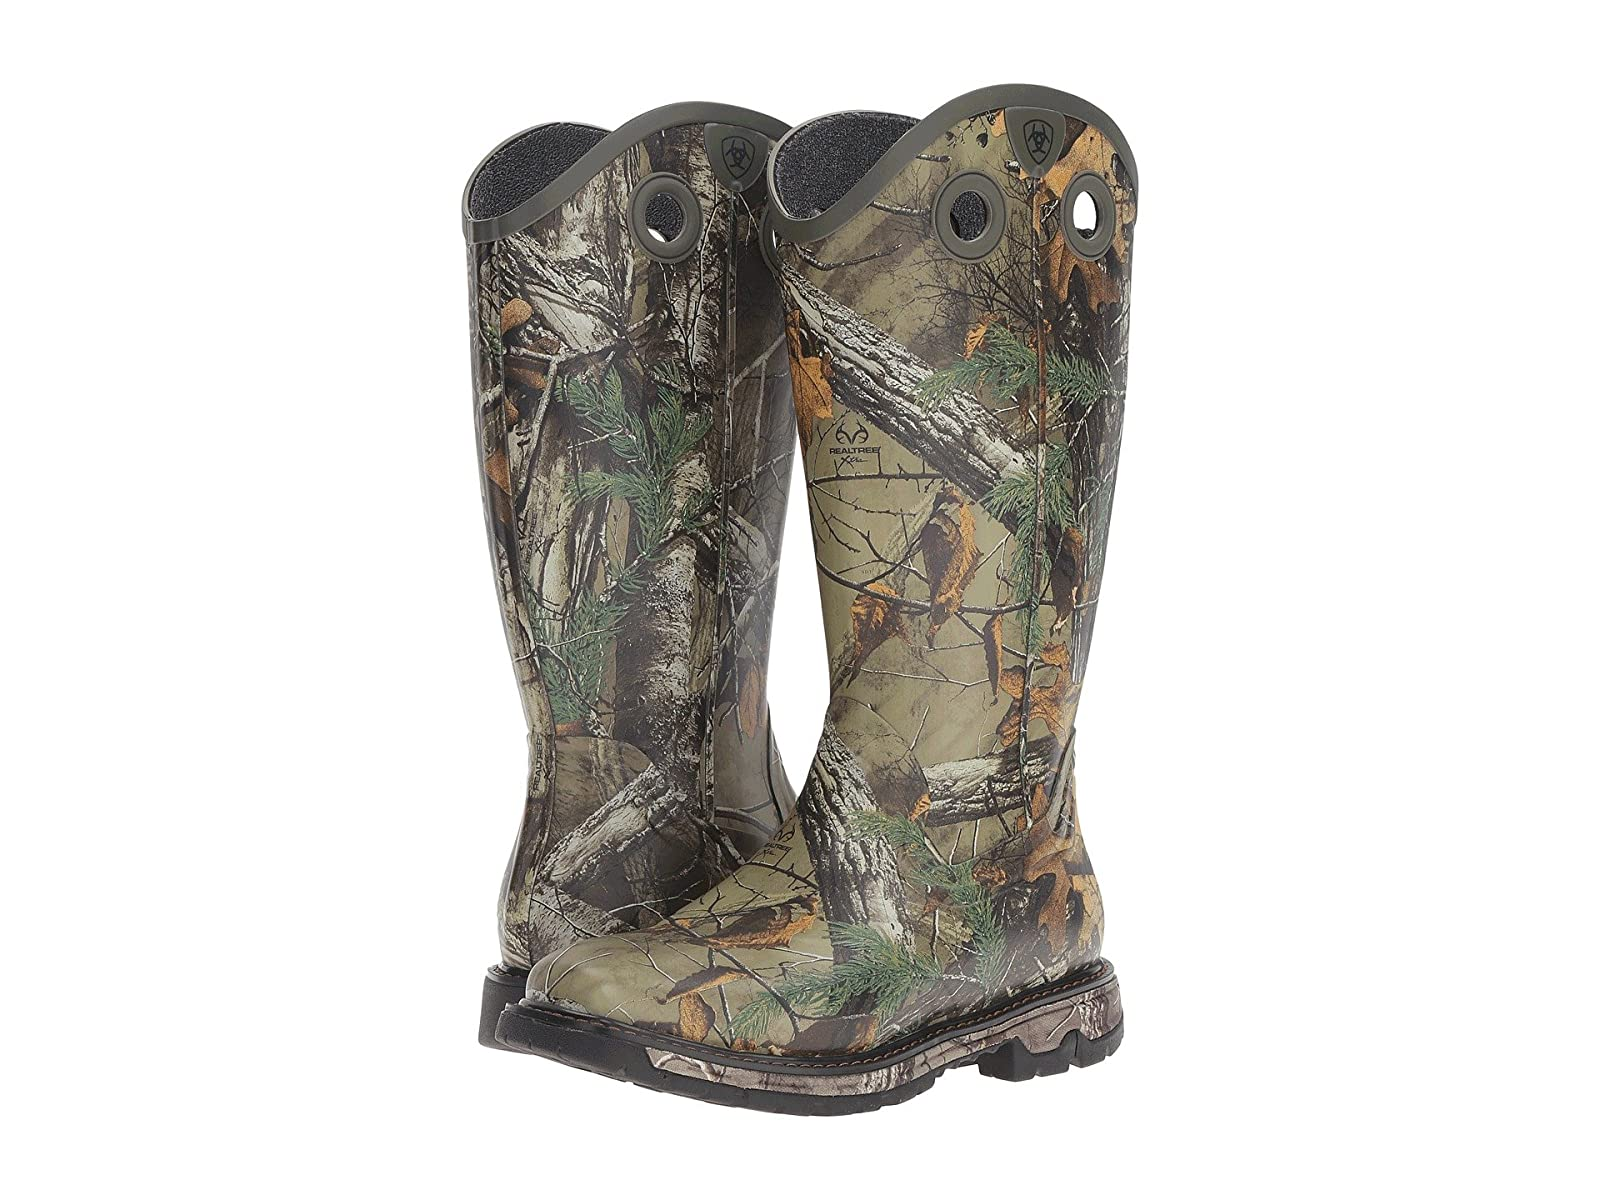 Ariat Conquest Rubber BuckarooSelling fashionable and eye-catching shoes